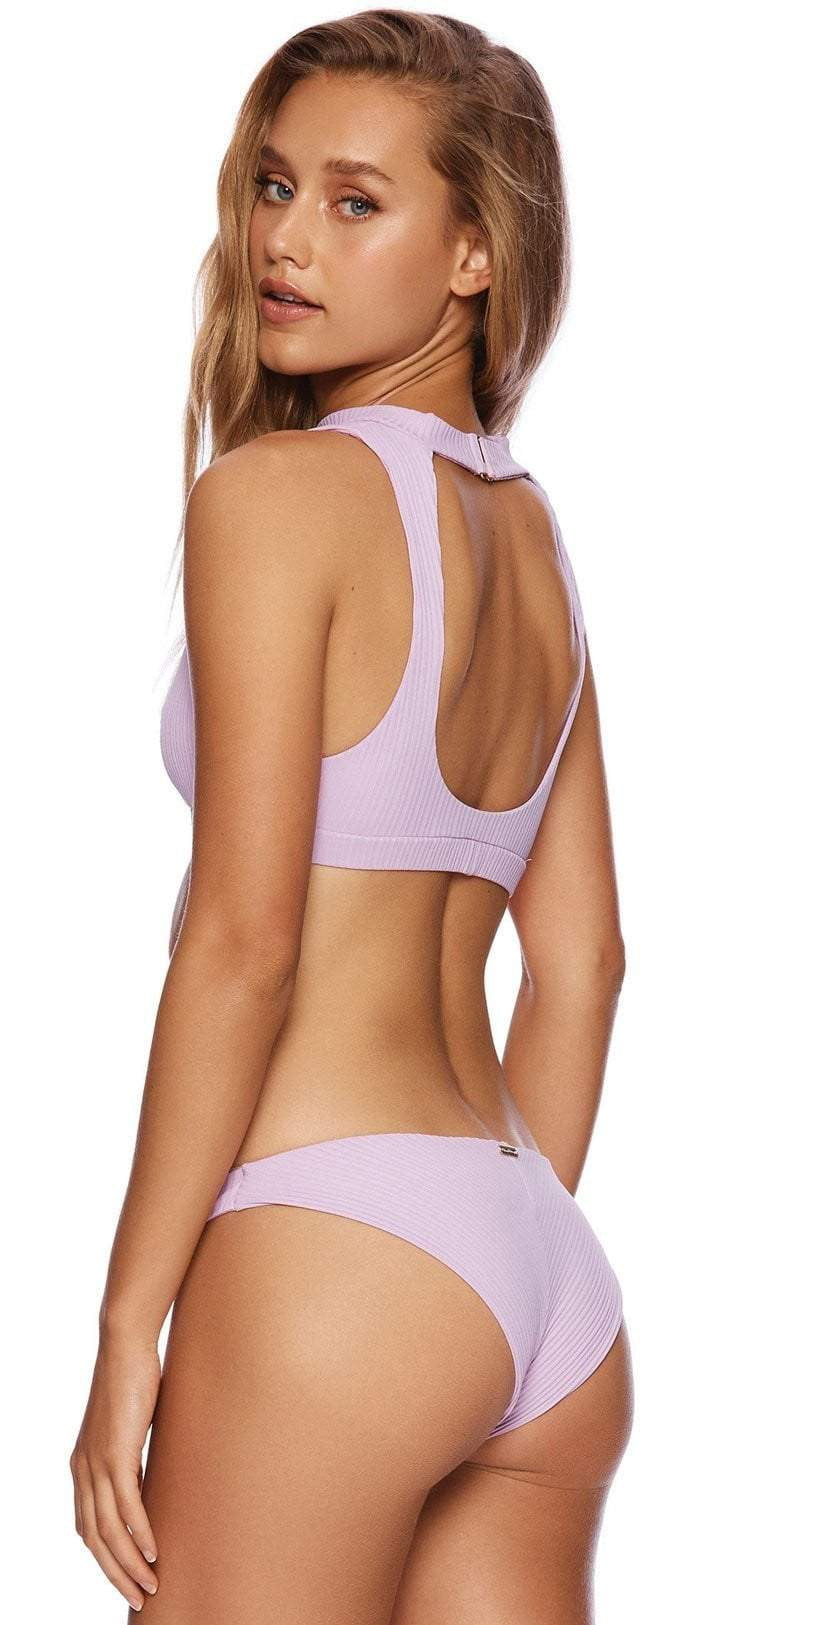 Beach Bunny Gwen High Neck Bikini Top in Lavender B19112T5-LAV: